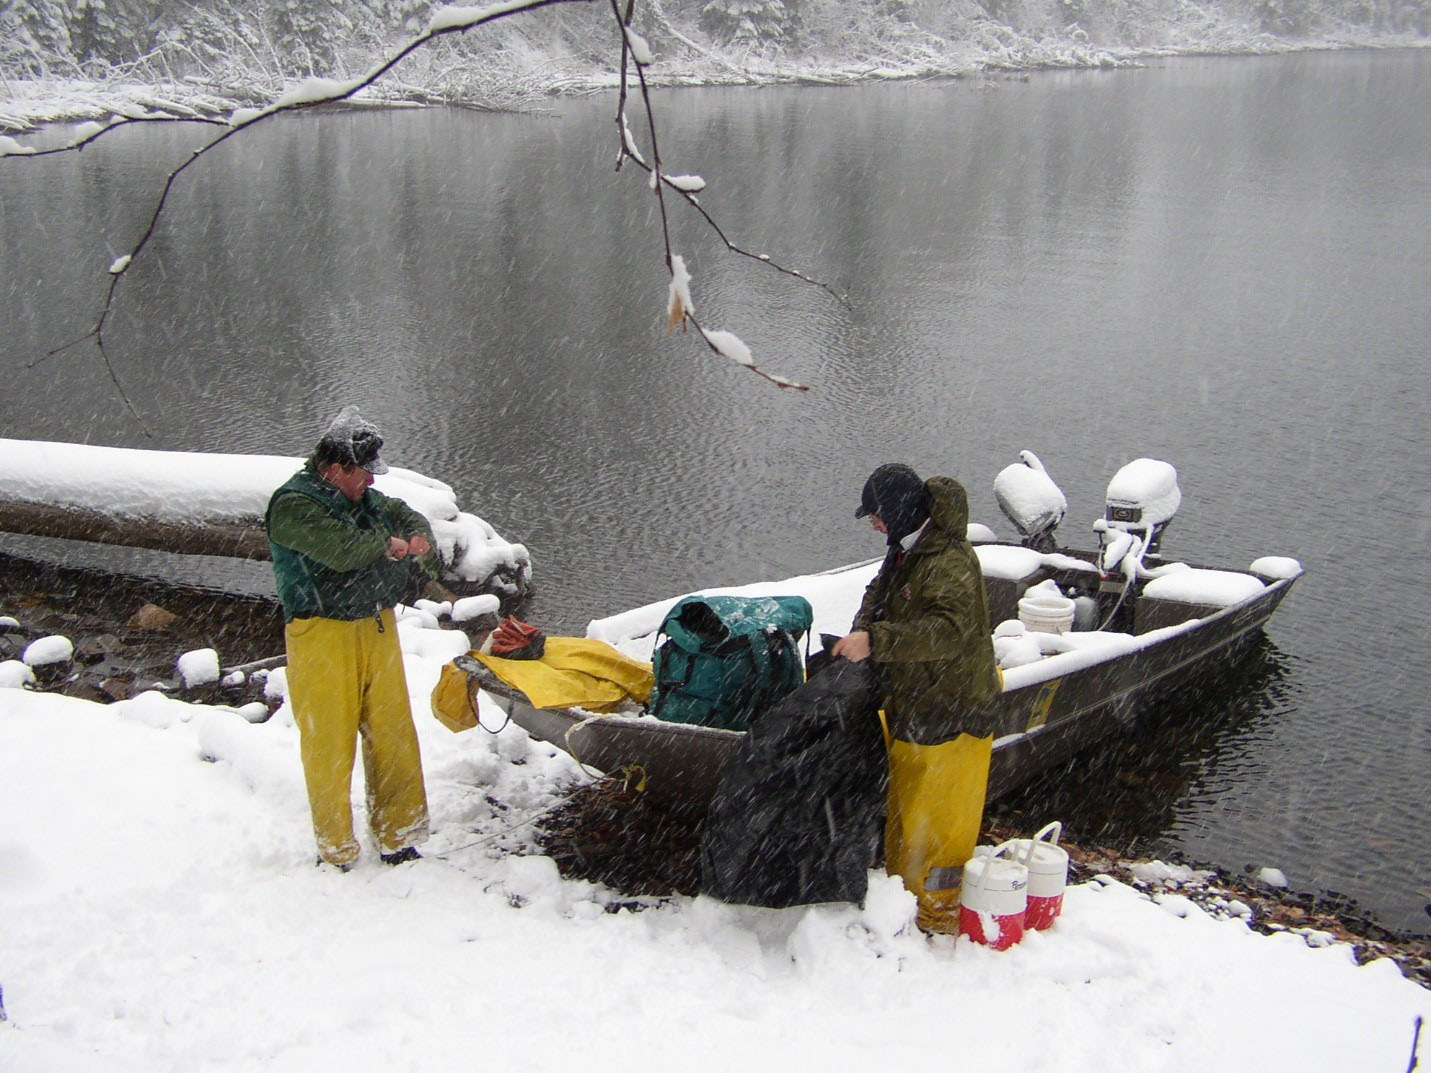 A Grand Marais crew pepares to portage lake trout eggs out of Mountain Lake. The eggs supply trout stocking programs throughout Minnesota.